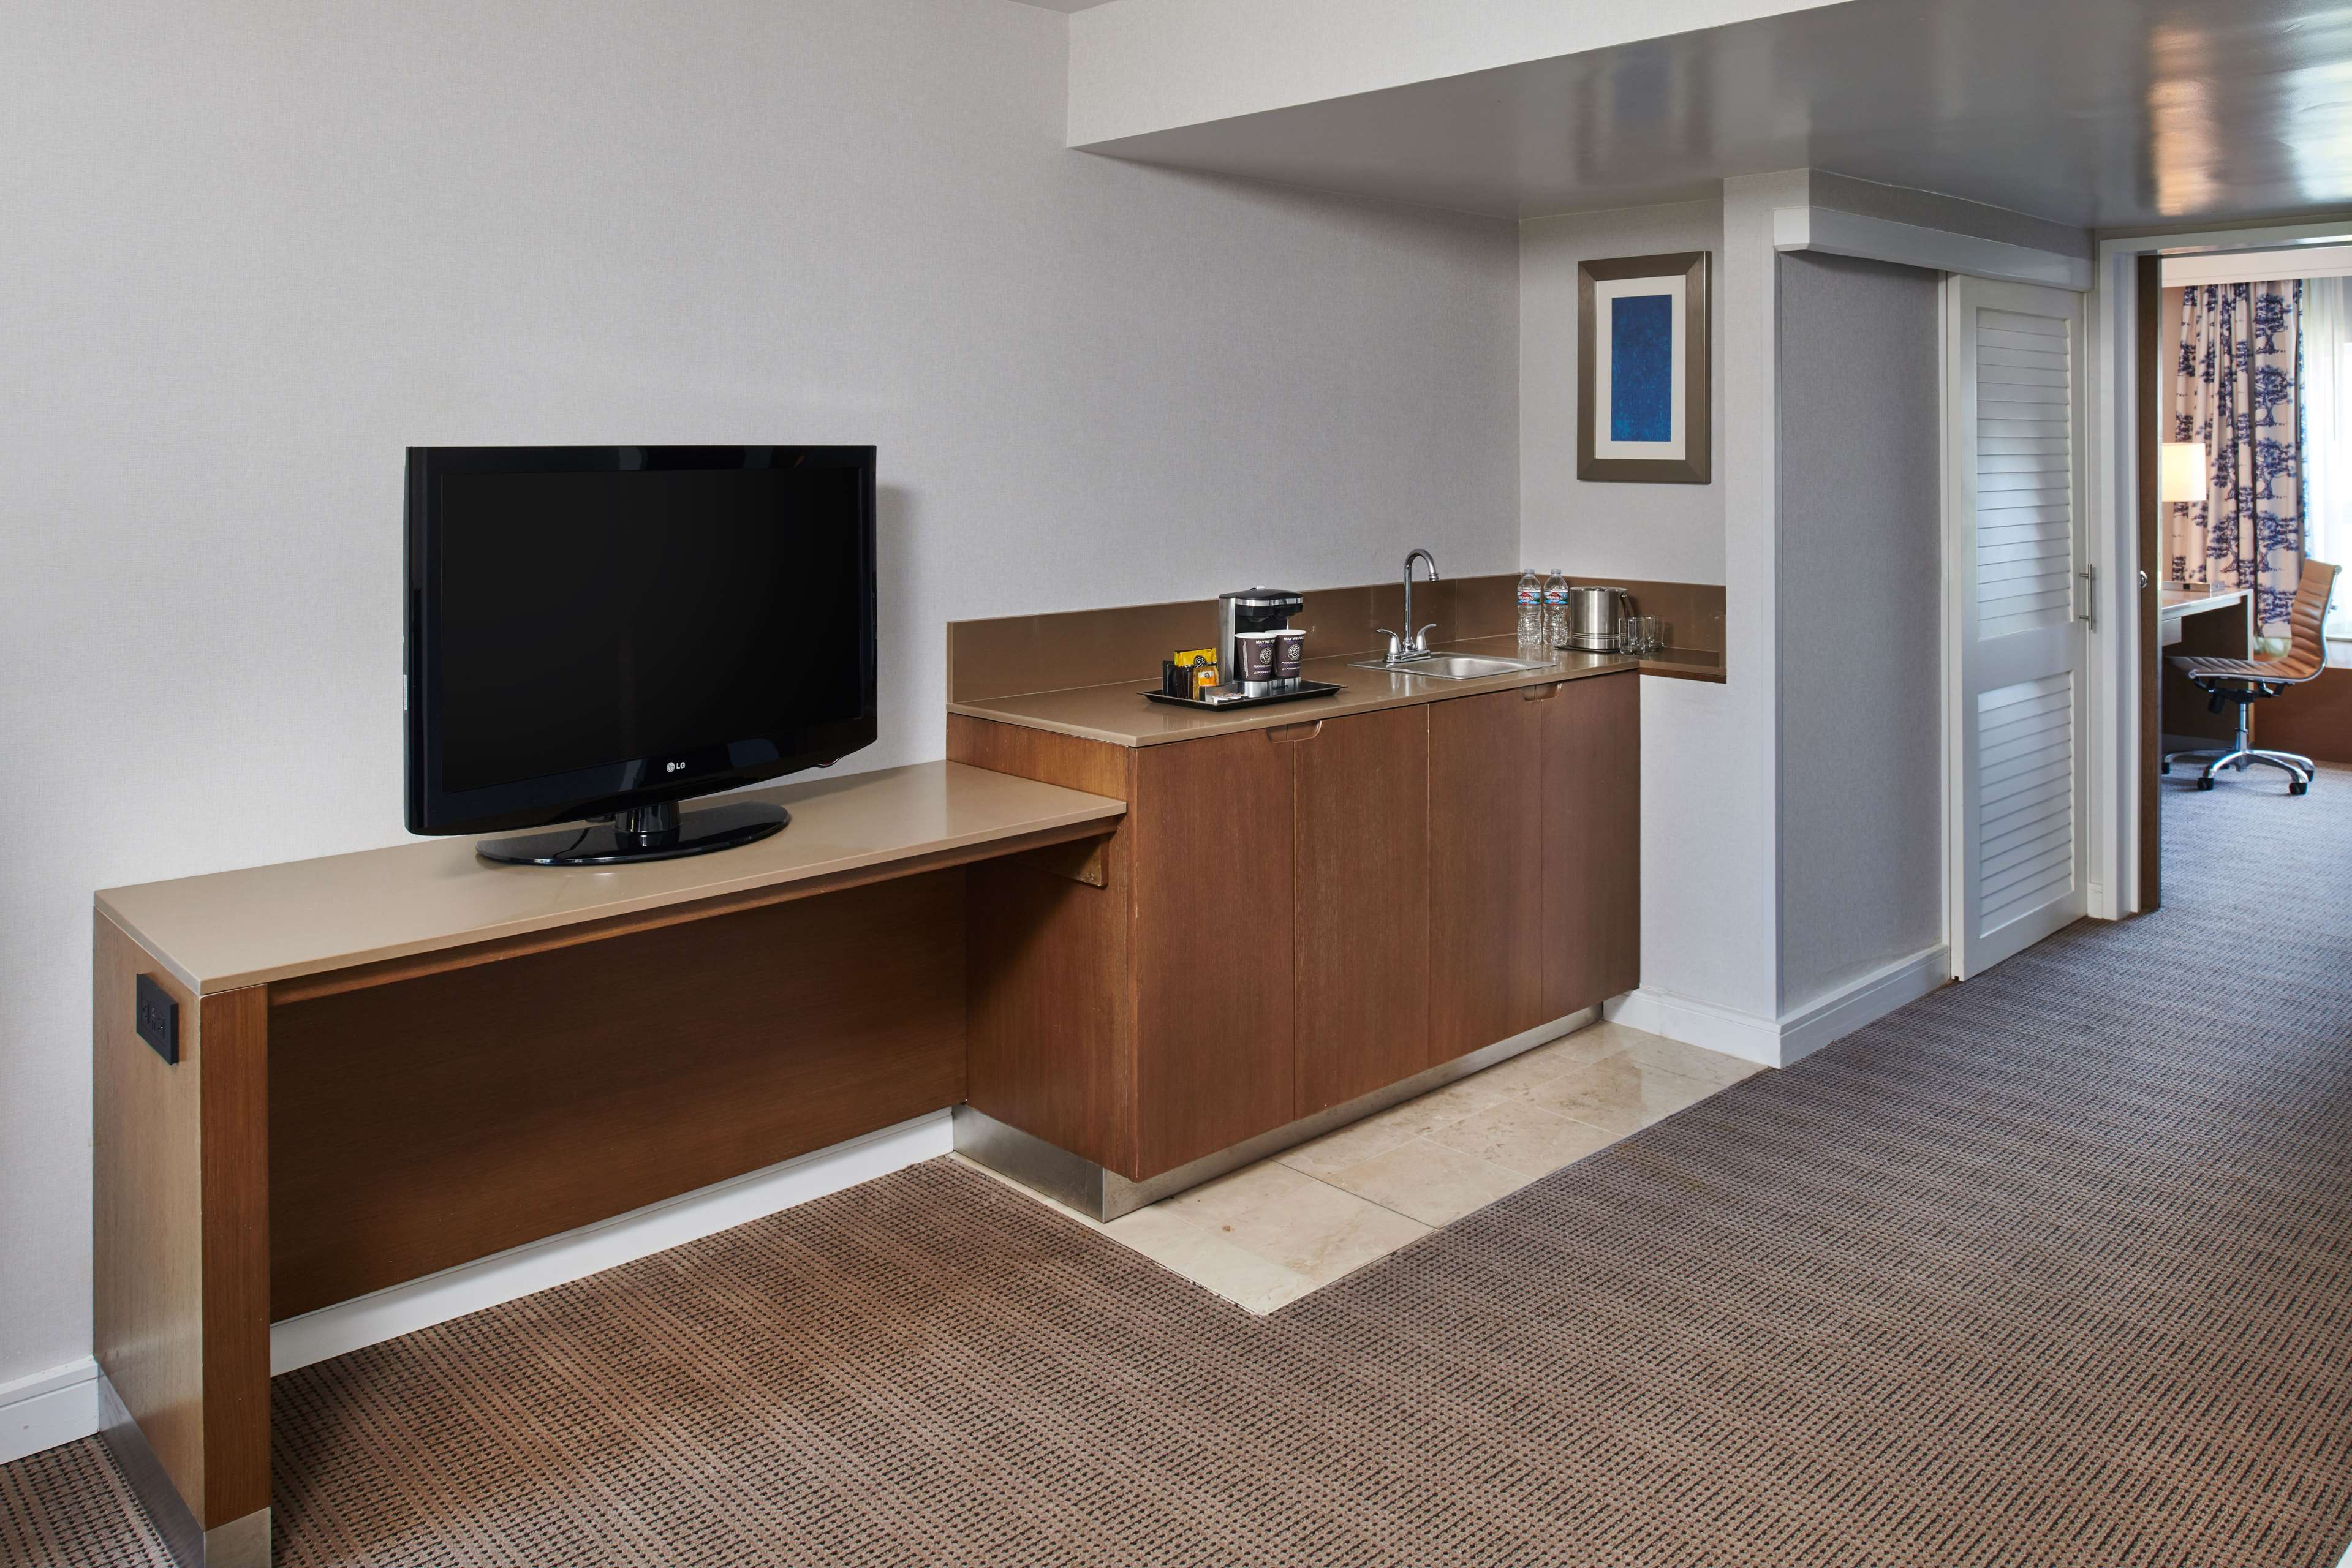 DoubleTree by Hilton Hotel Torrance - South Bay image 12